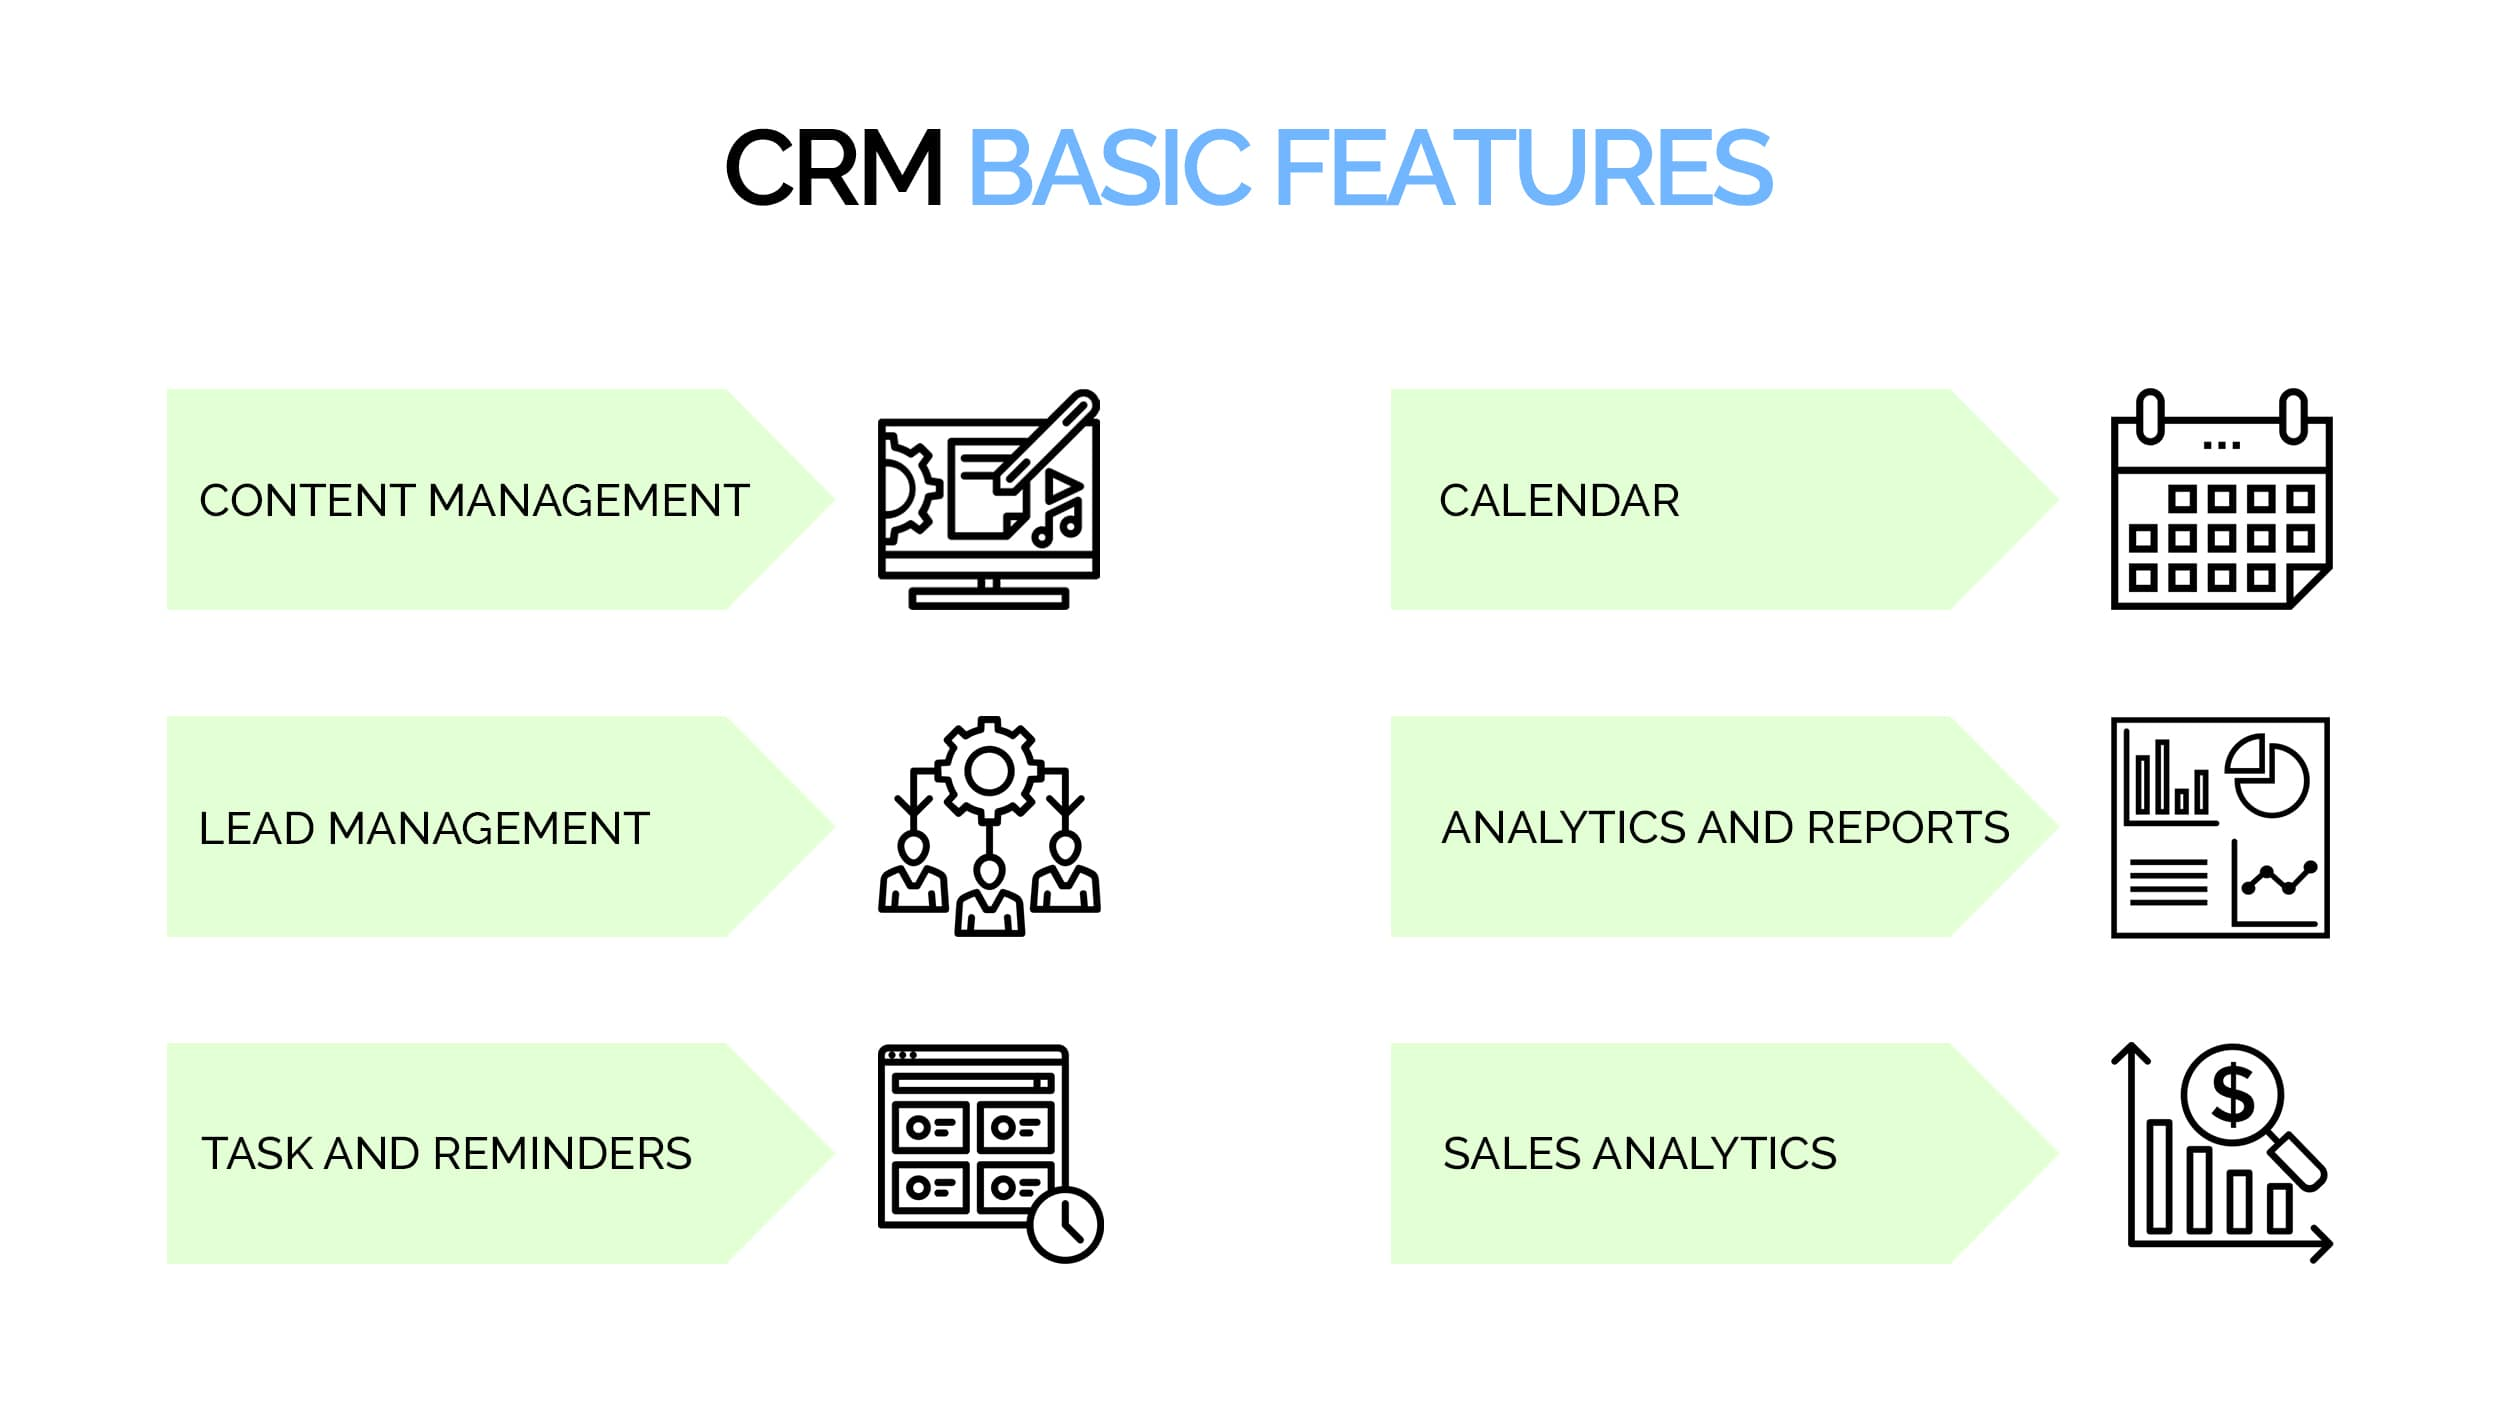 CRM basic features